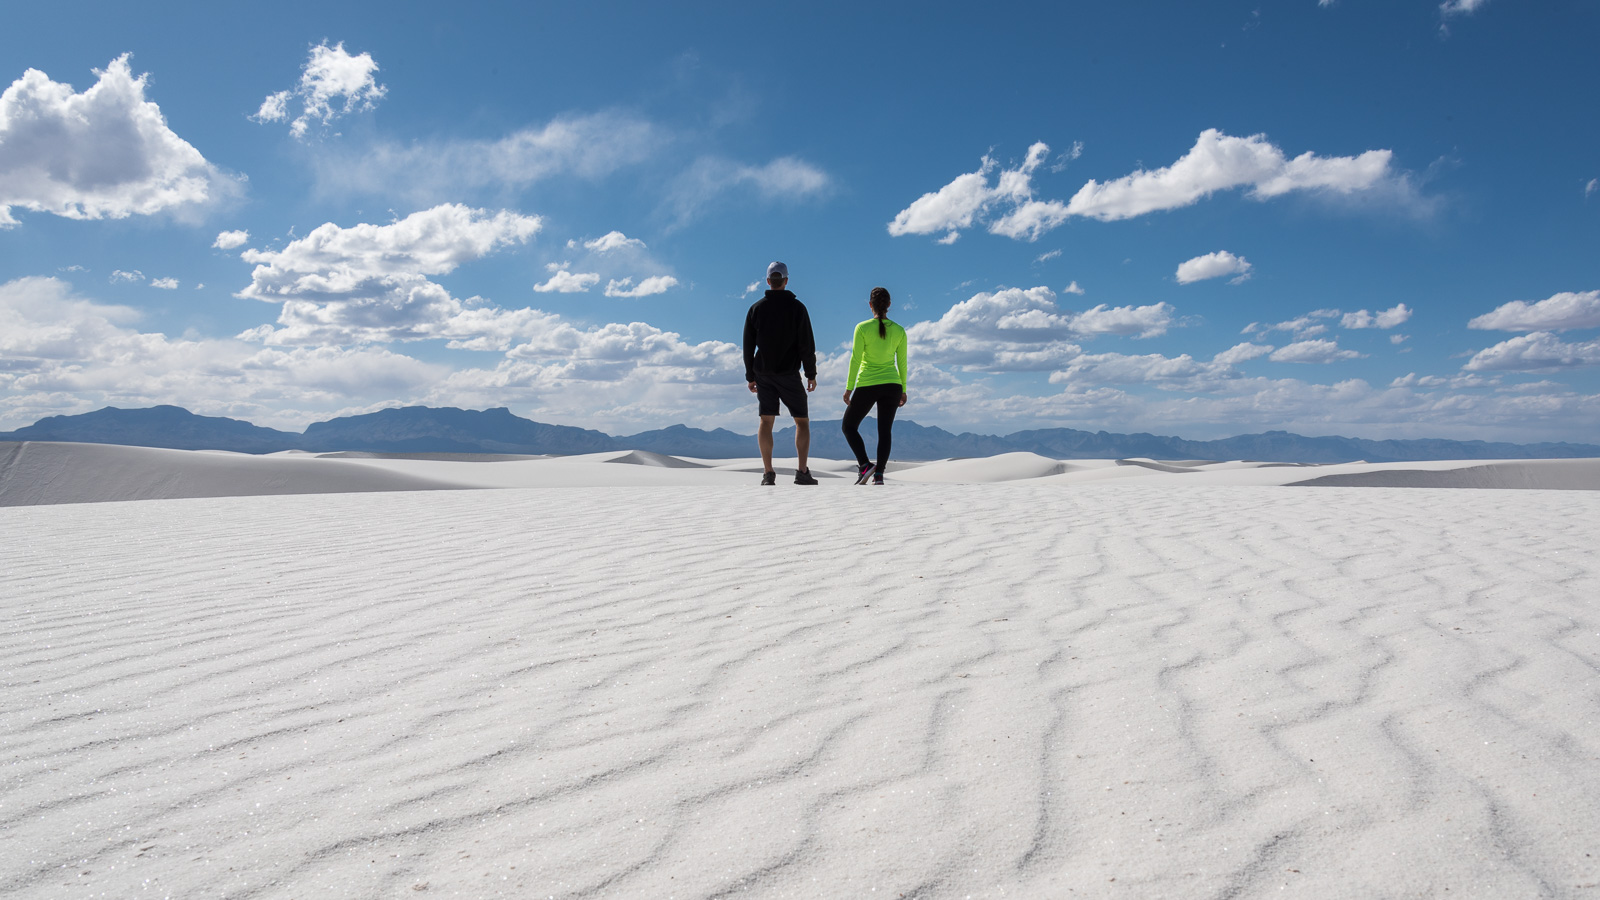 New Mexico: White Sands National Monument & Camping in the Dunes